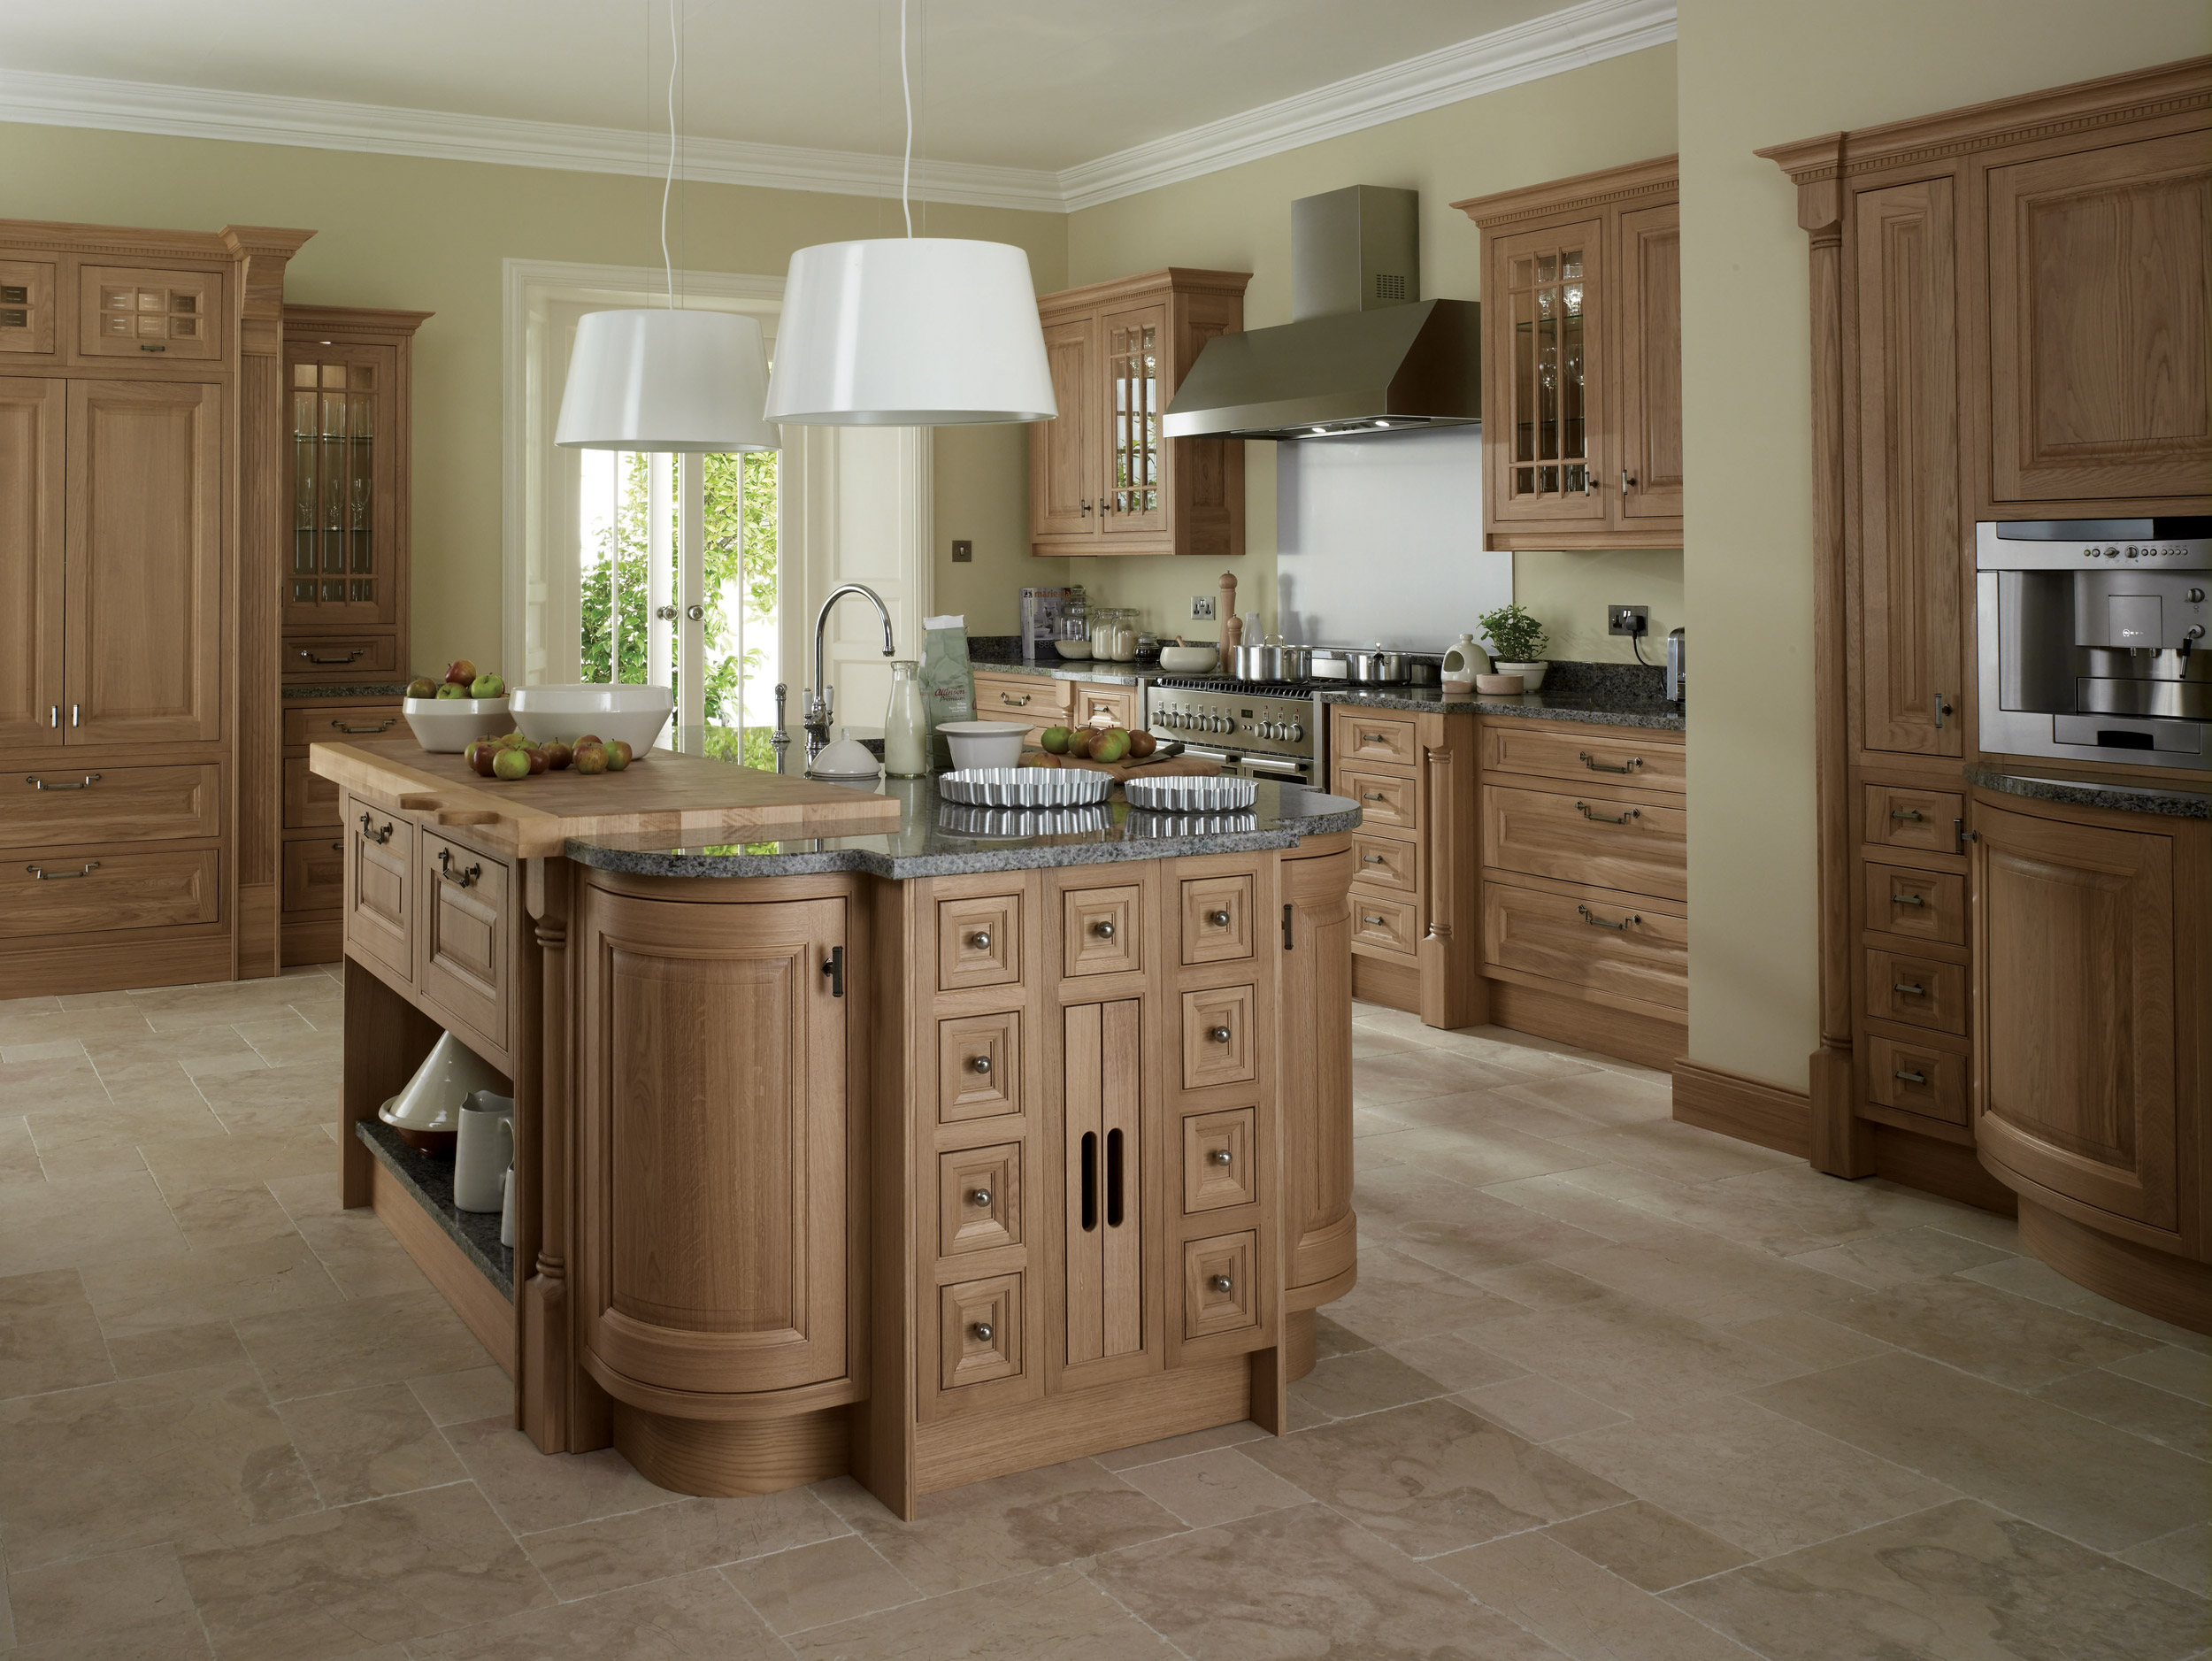 Astor oak from eaton kitchen designs wolverhampton for Oak kitchen ideas designs